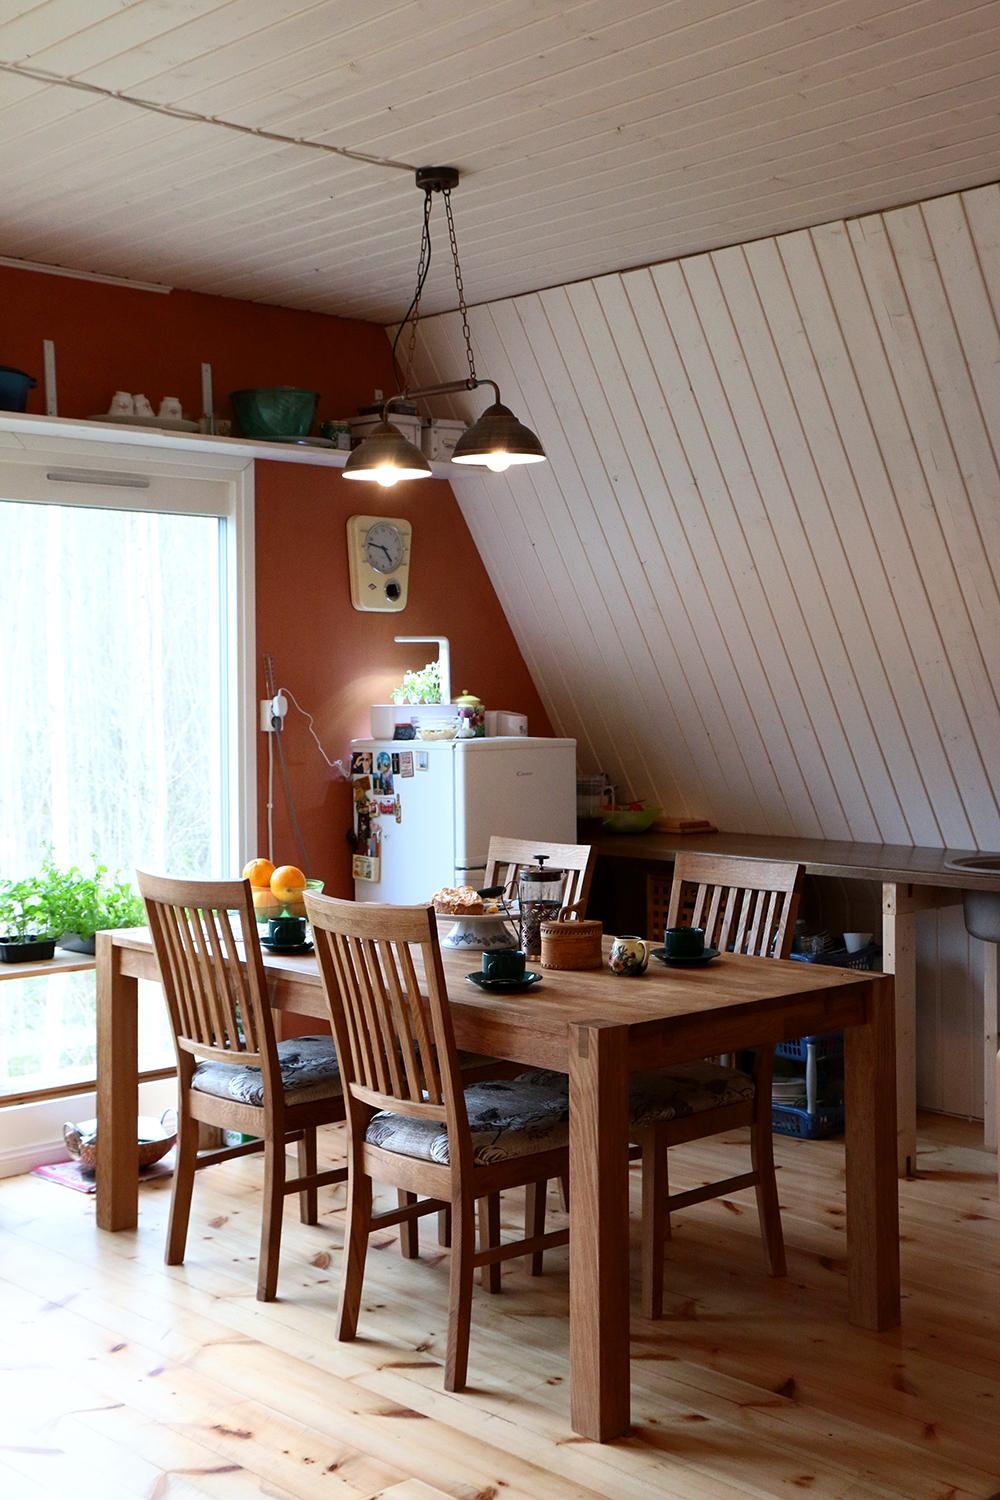 A-frame houses: homes for those who (can) calculate - katus.eu